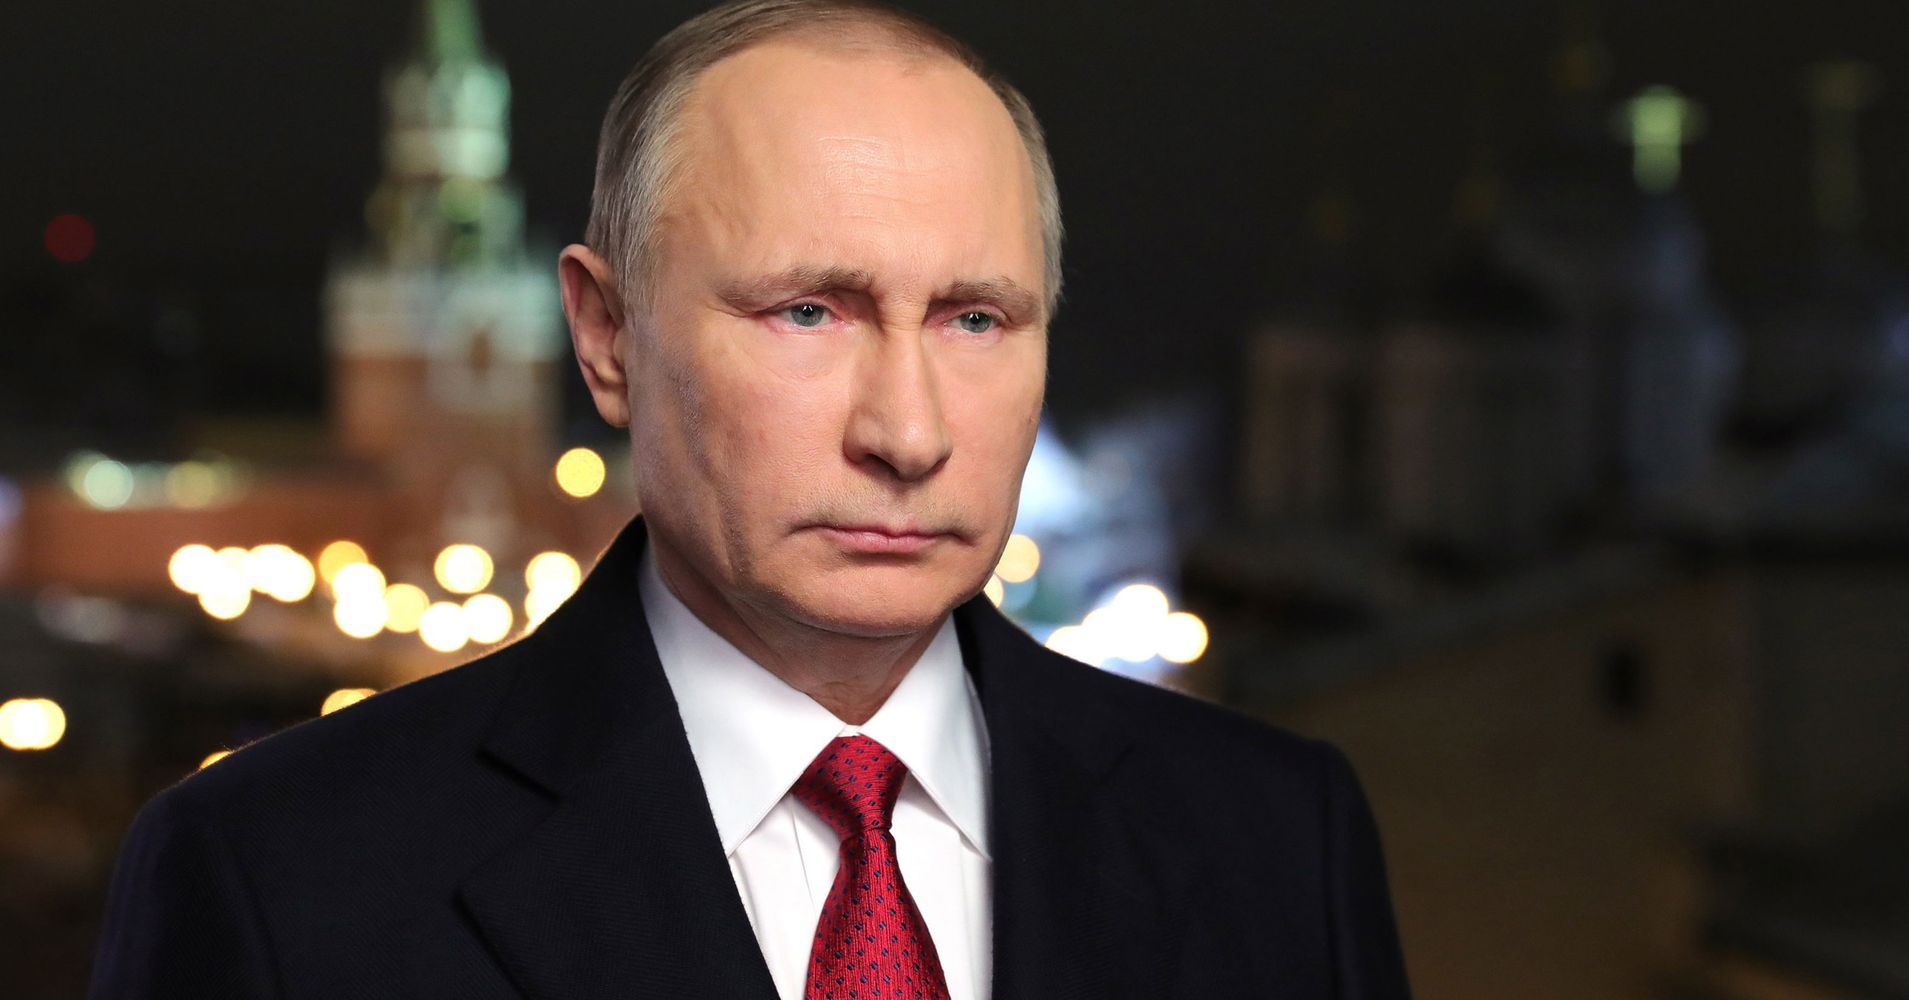 Russian intervention in us election was no one off irish times - Intelligence Report Concludes That Vladimir Putin Intervened In U S Election To Help Donald Trump Win Huffpost